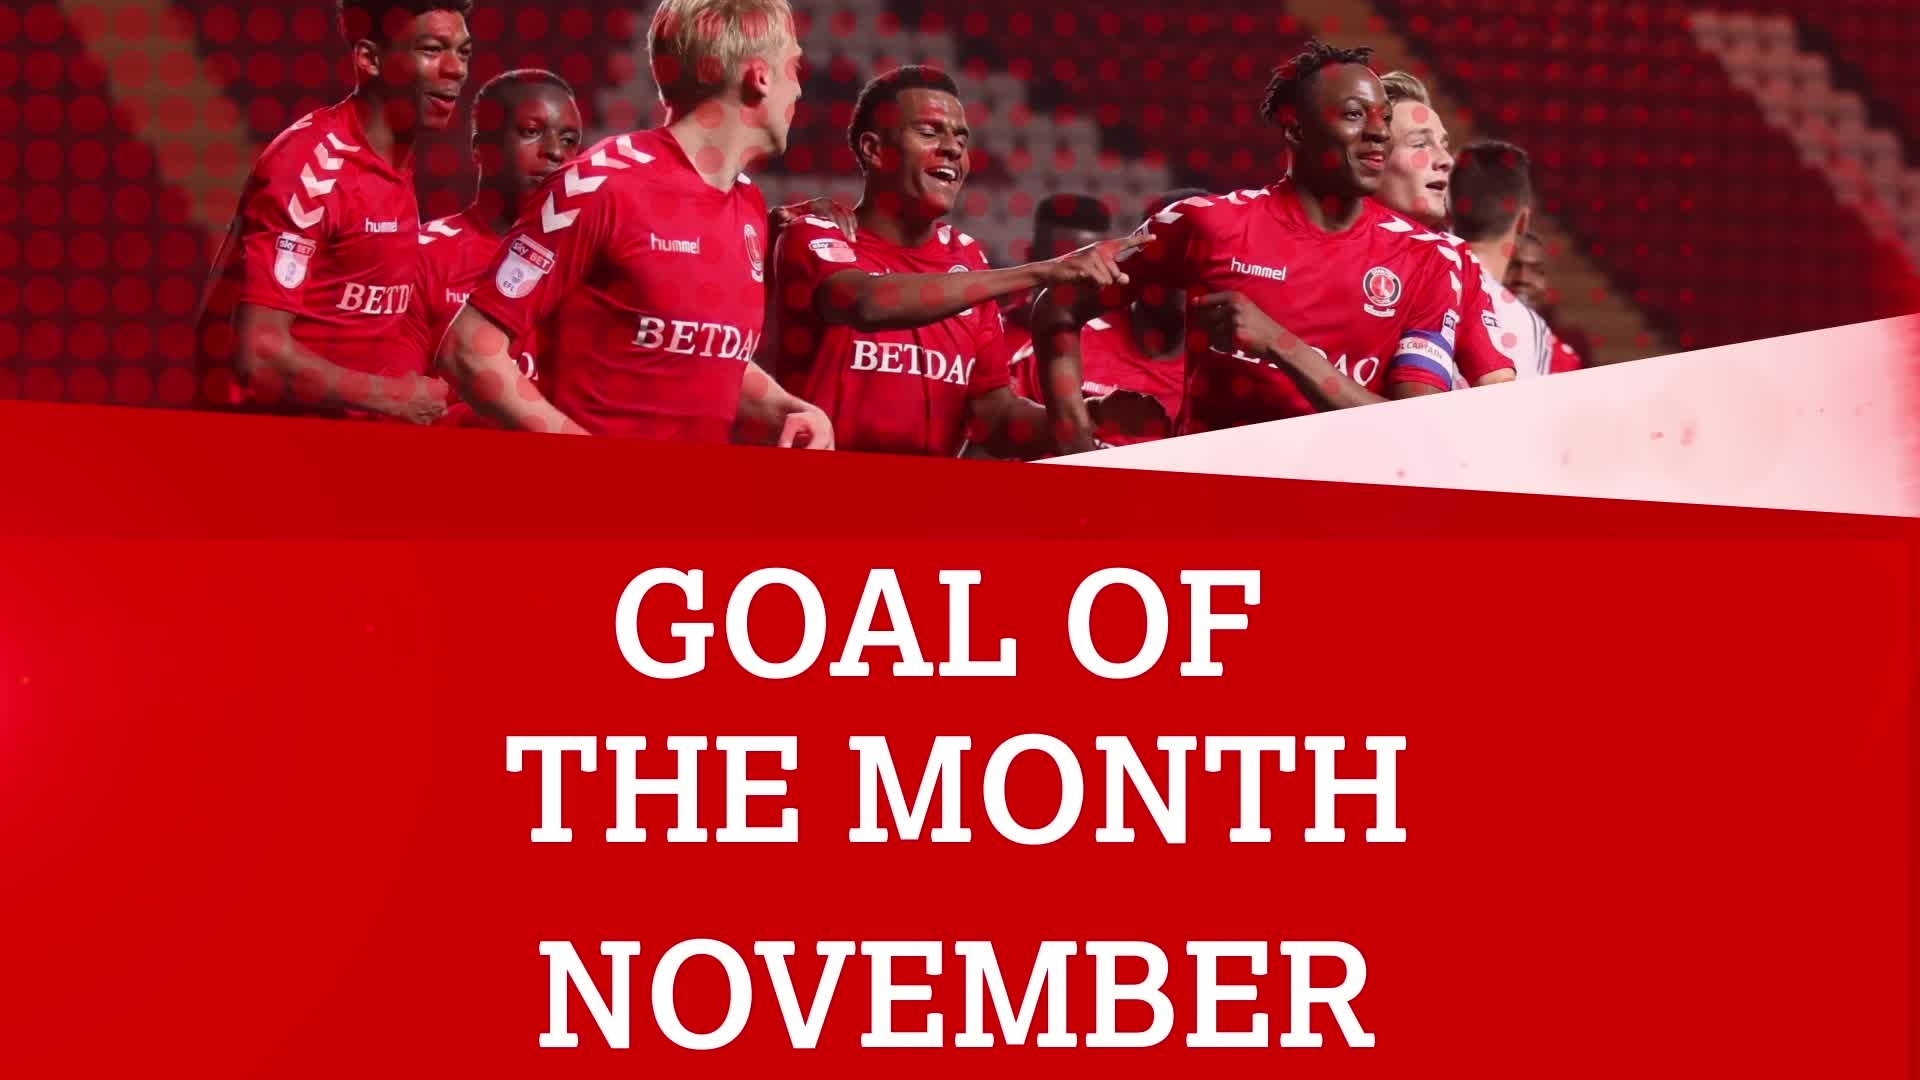 GOAL OF THE MONTH | November